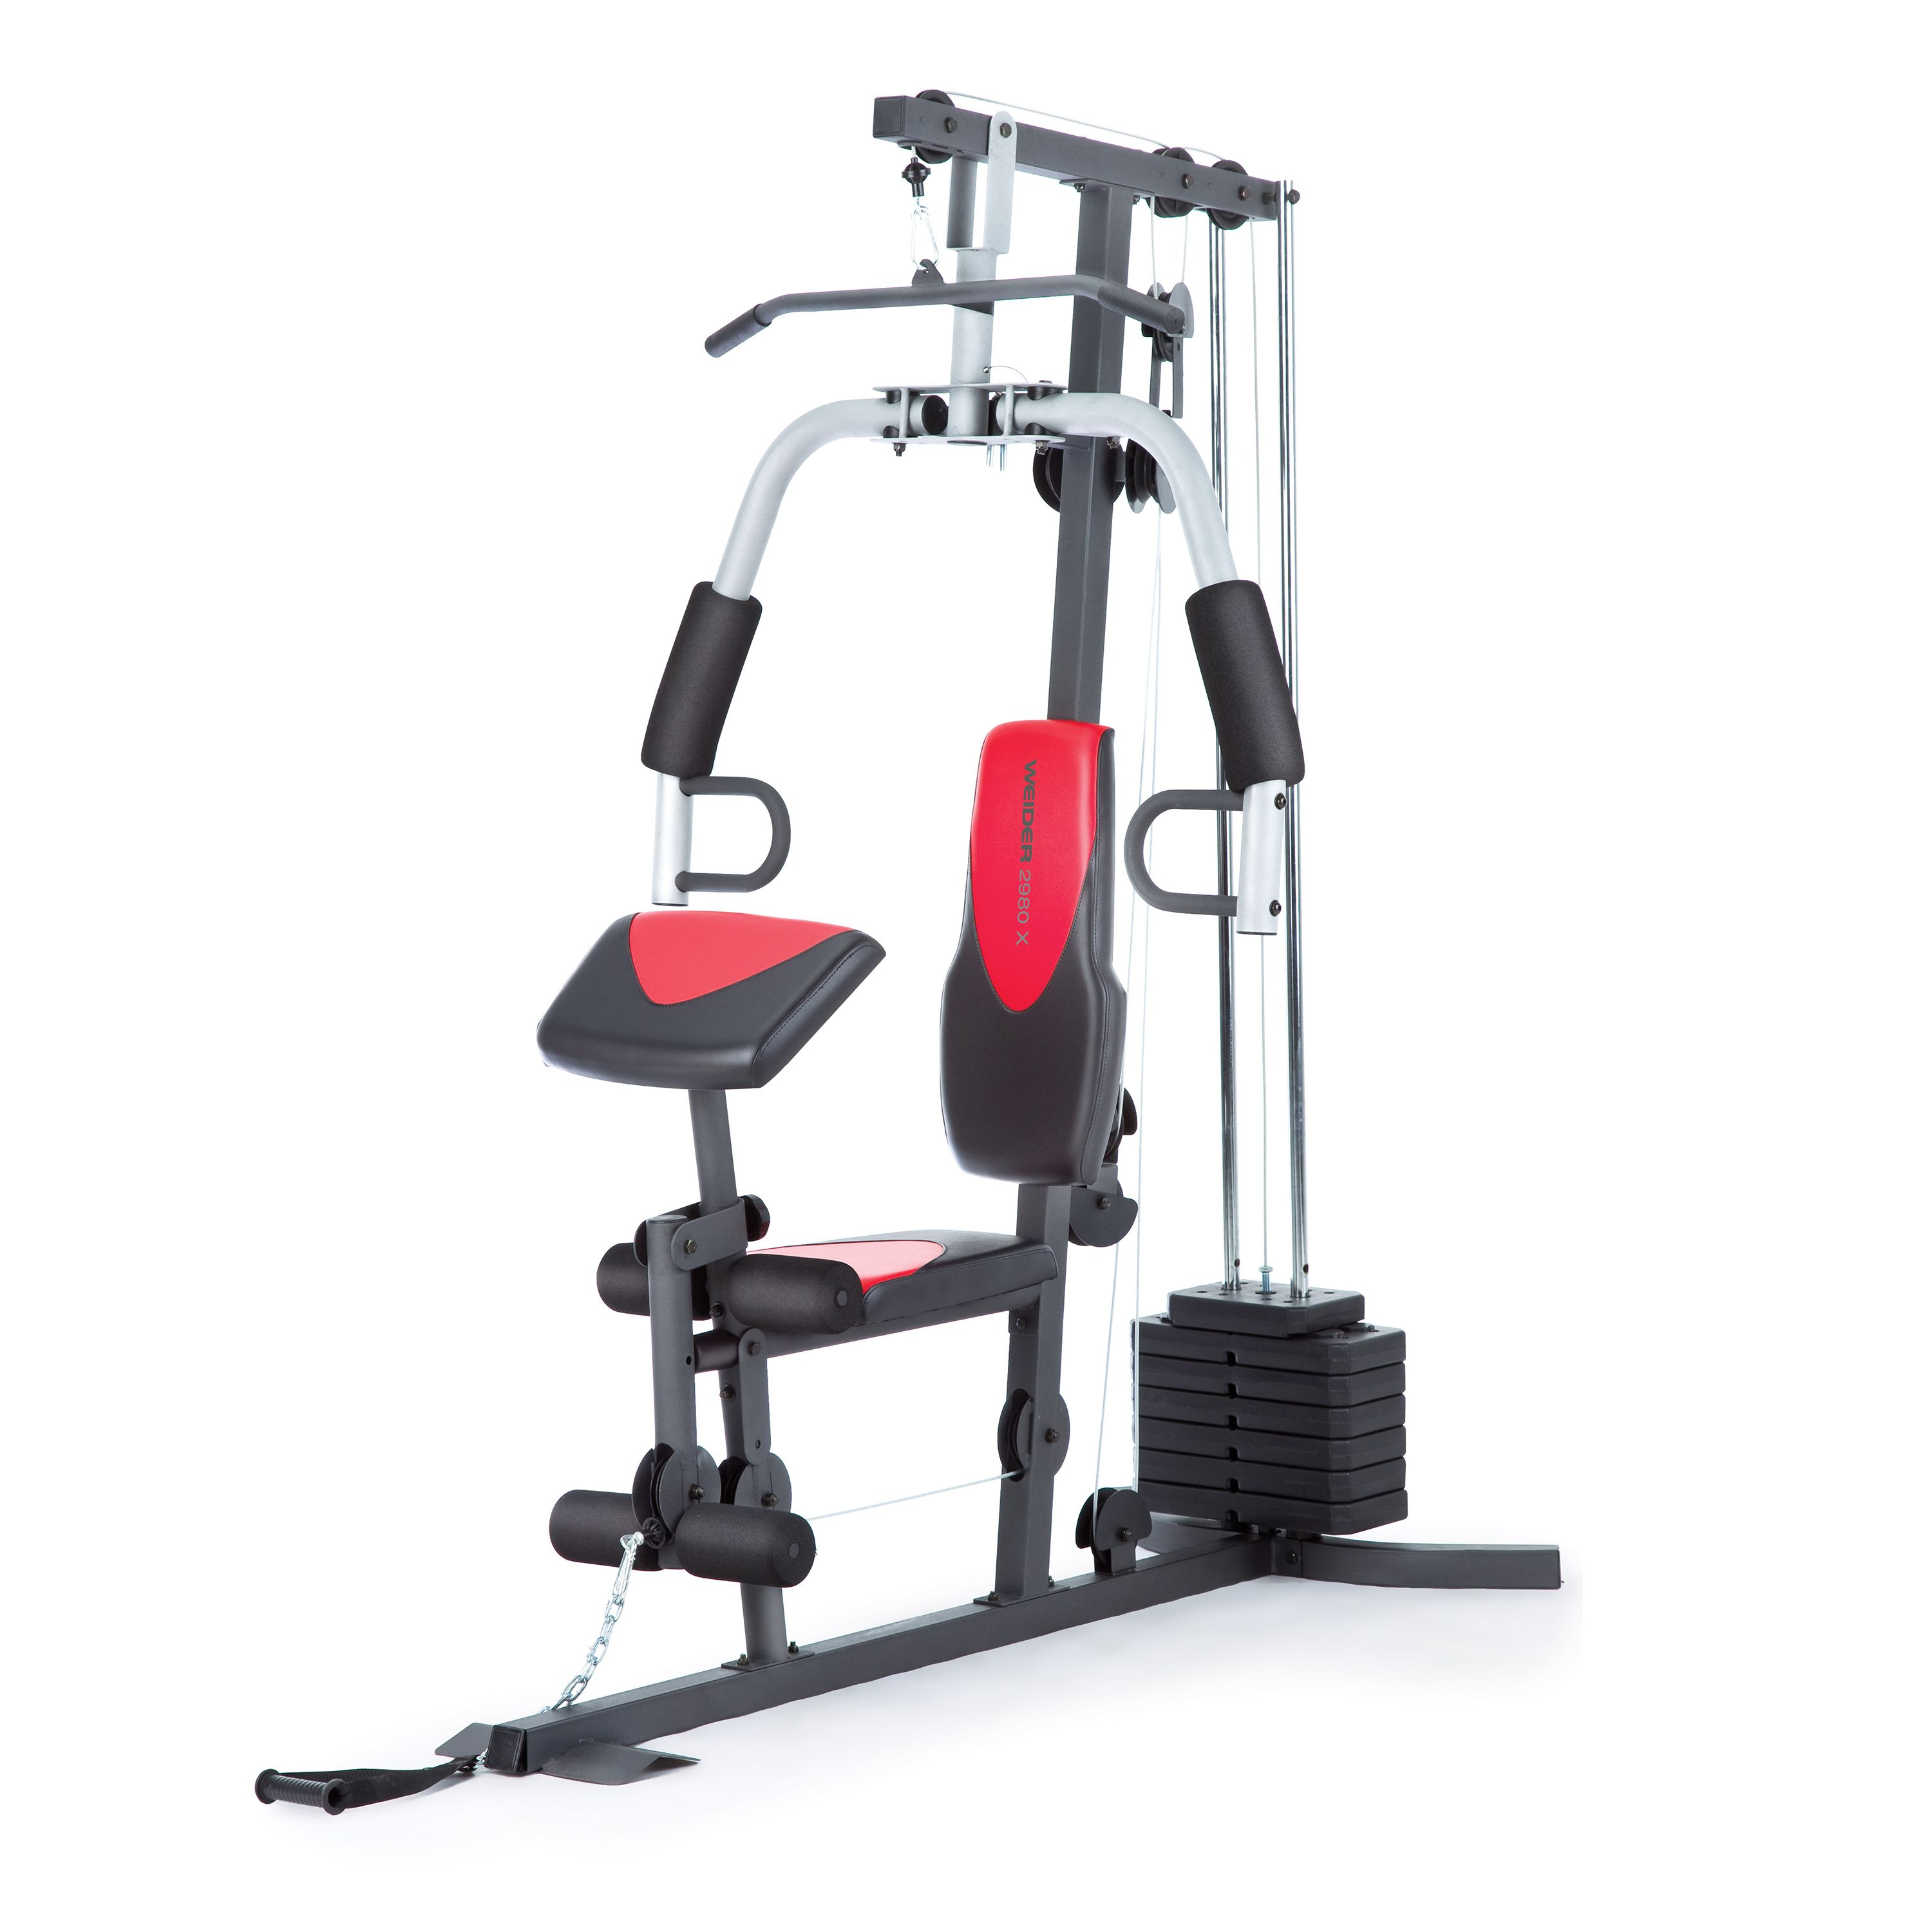 Weider 2980 Home Gym with 214 Lbs. of Resistance